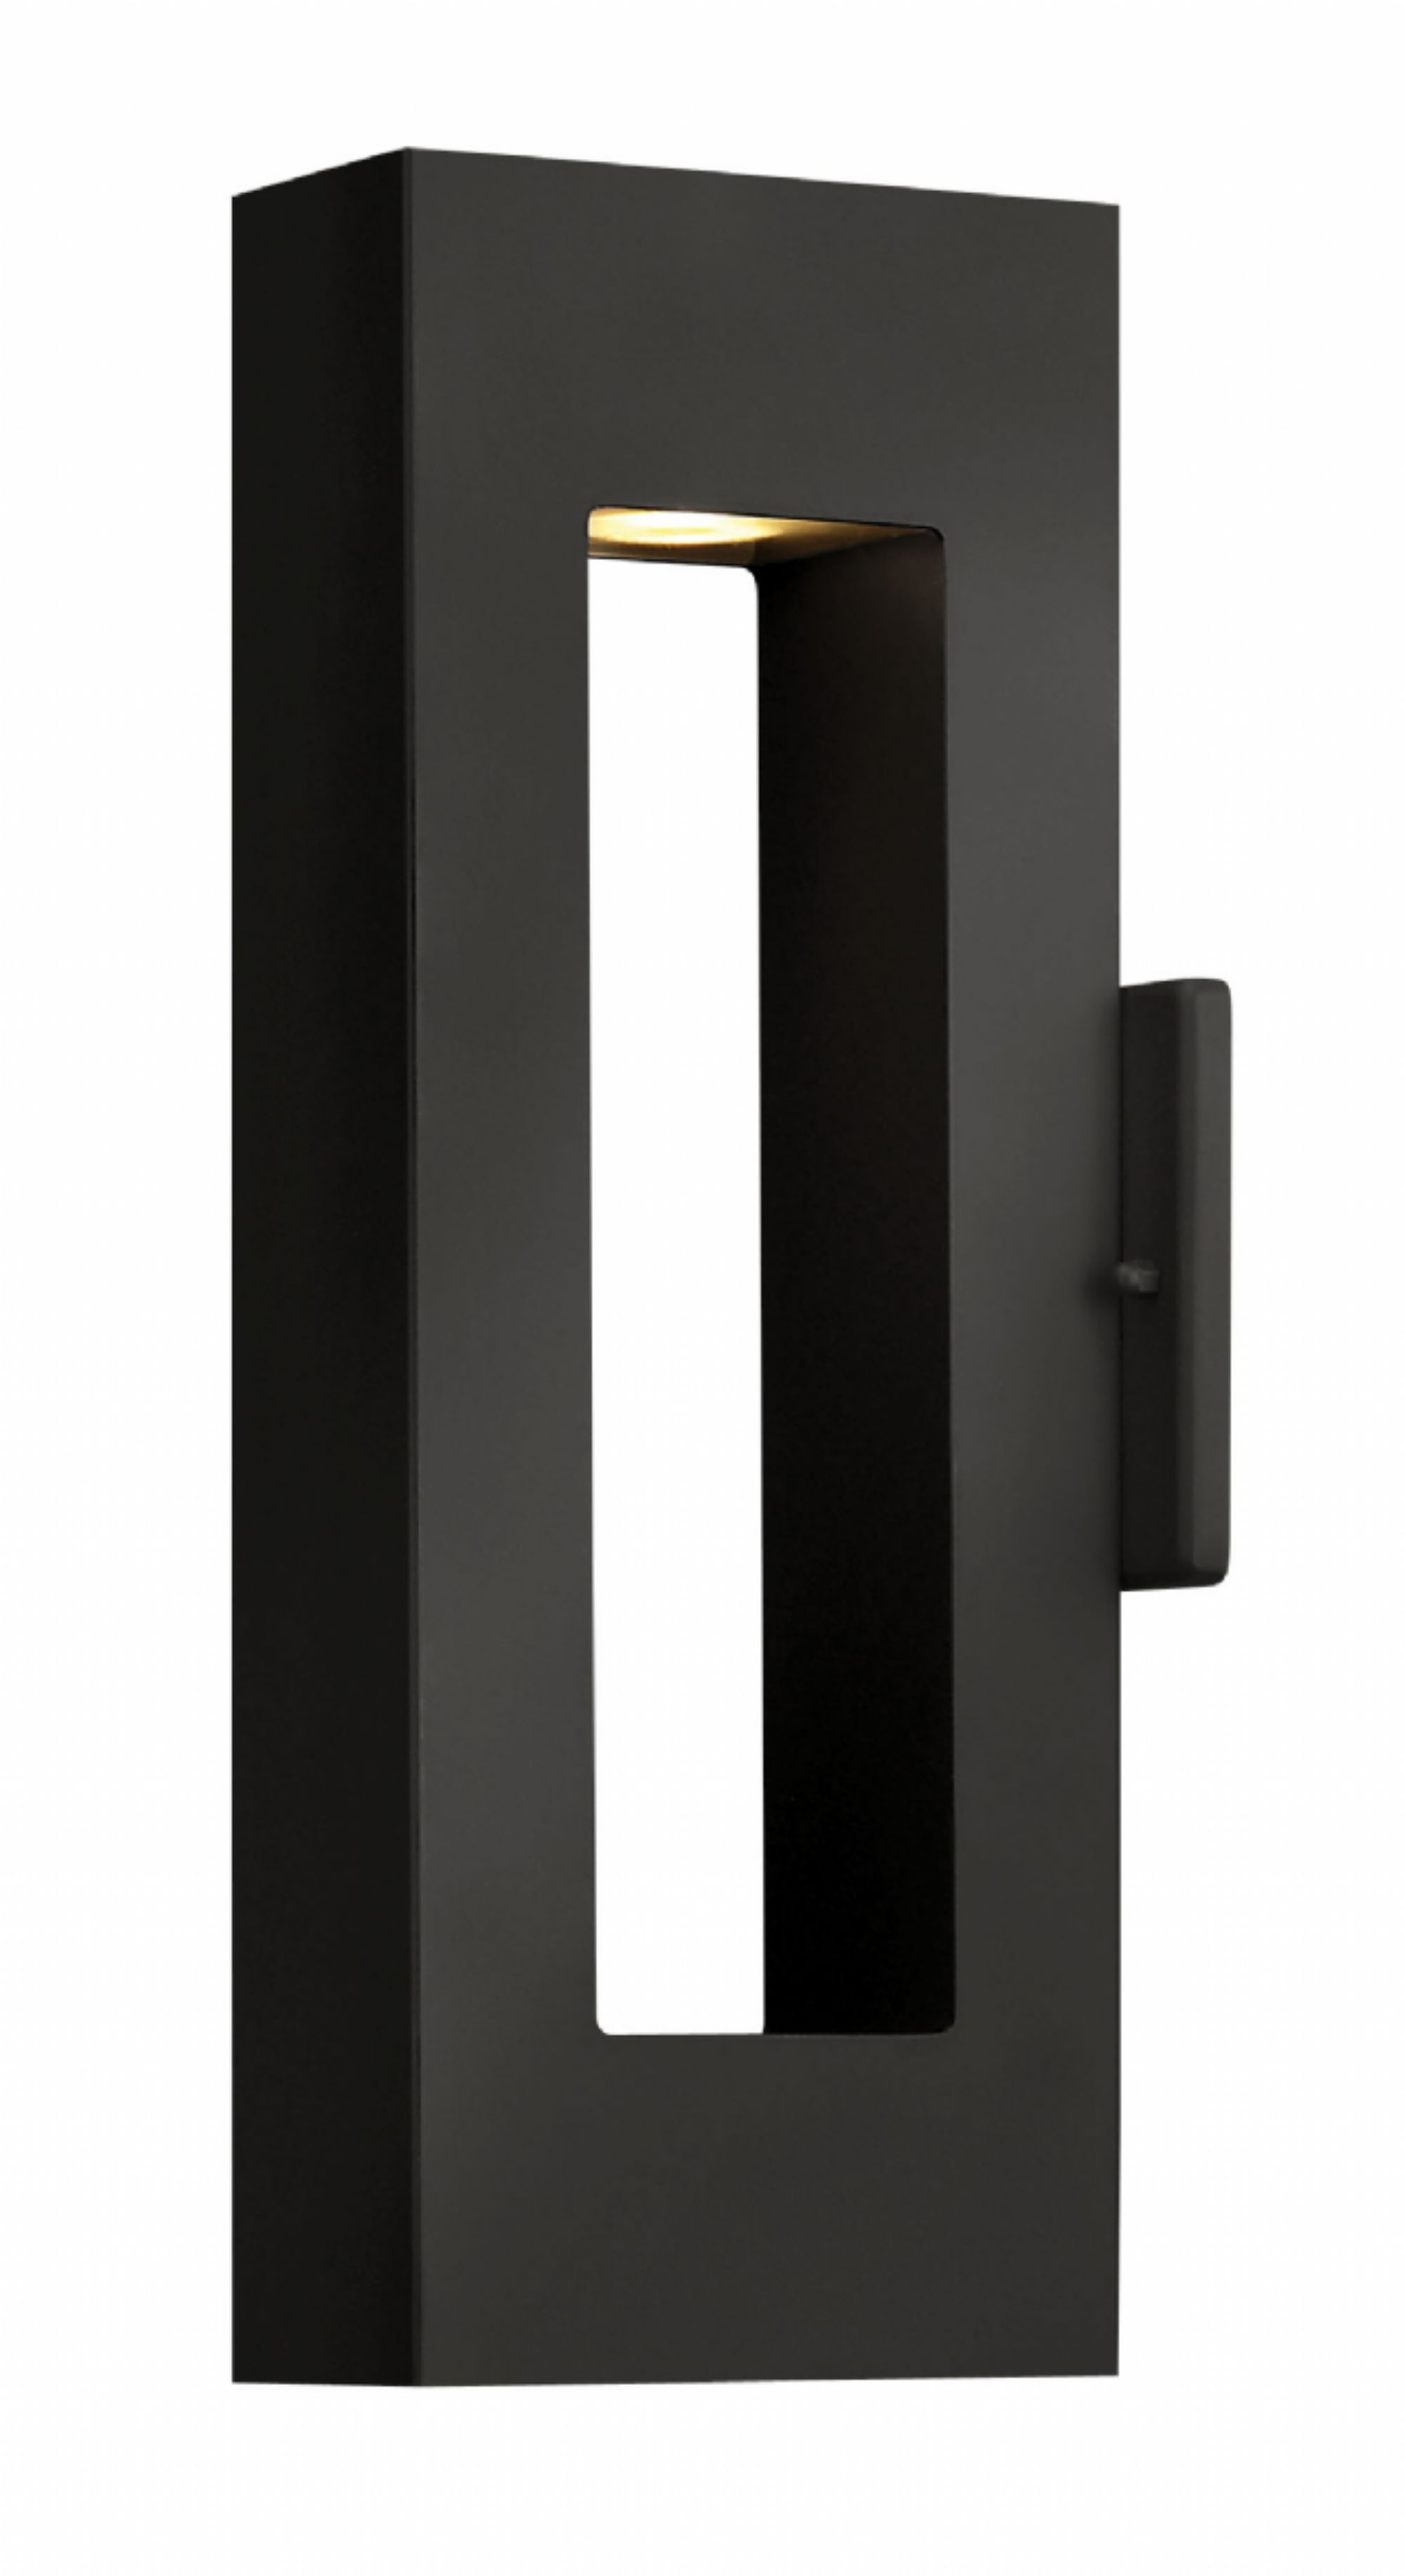 Satin Black Atlantis > Exterior Wall Mount Regarding Modern Led Hinkley Lighting (#11 of 15)